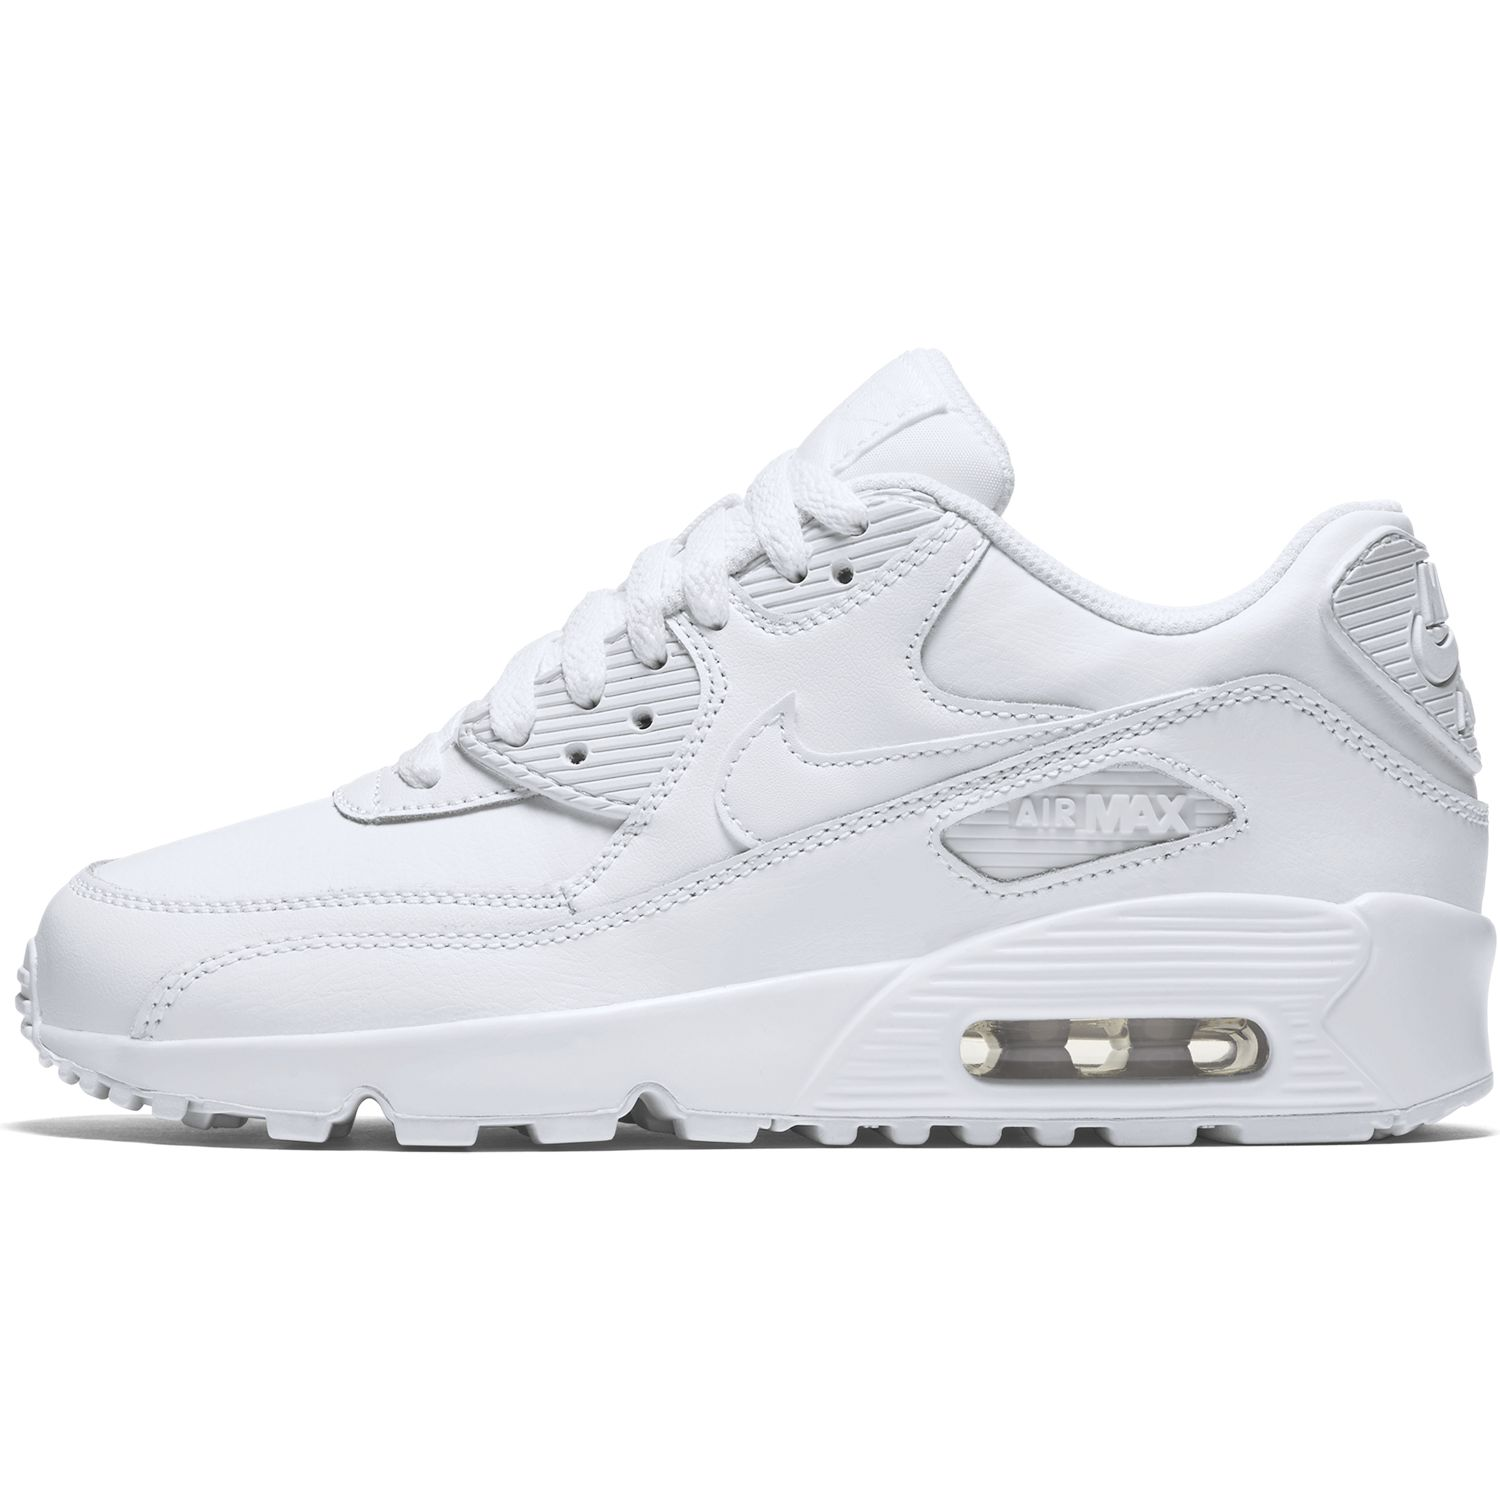 Nike Air Max 90 Leather All White 833412 100